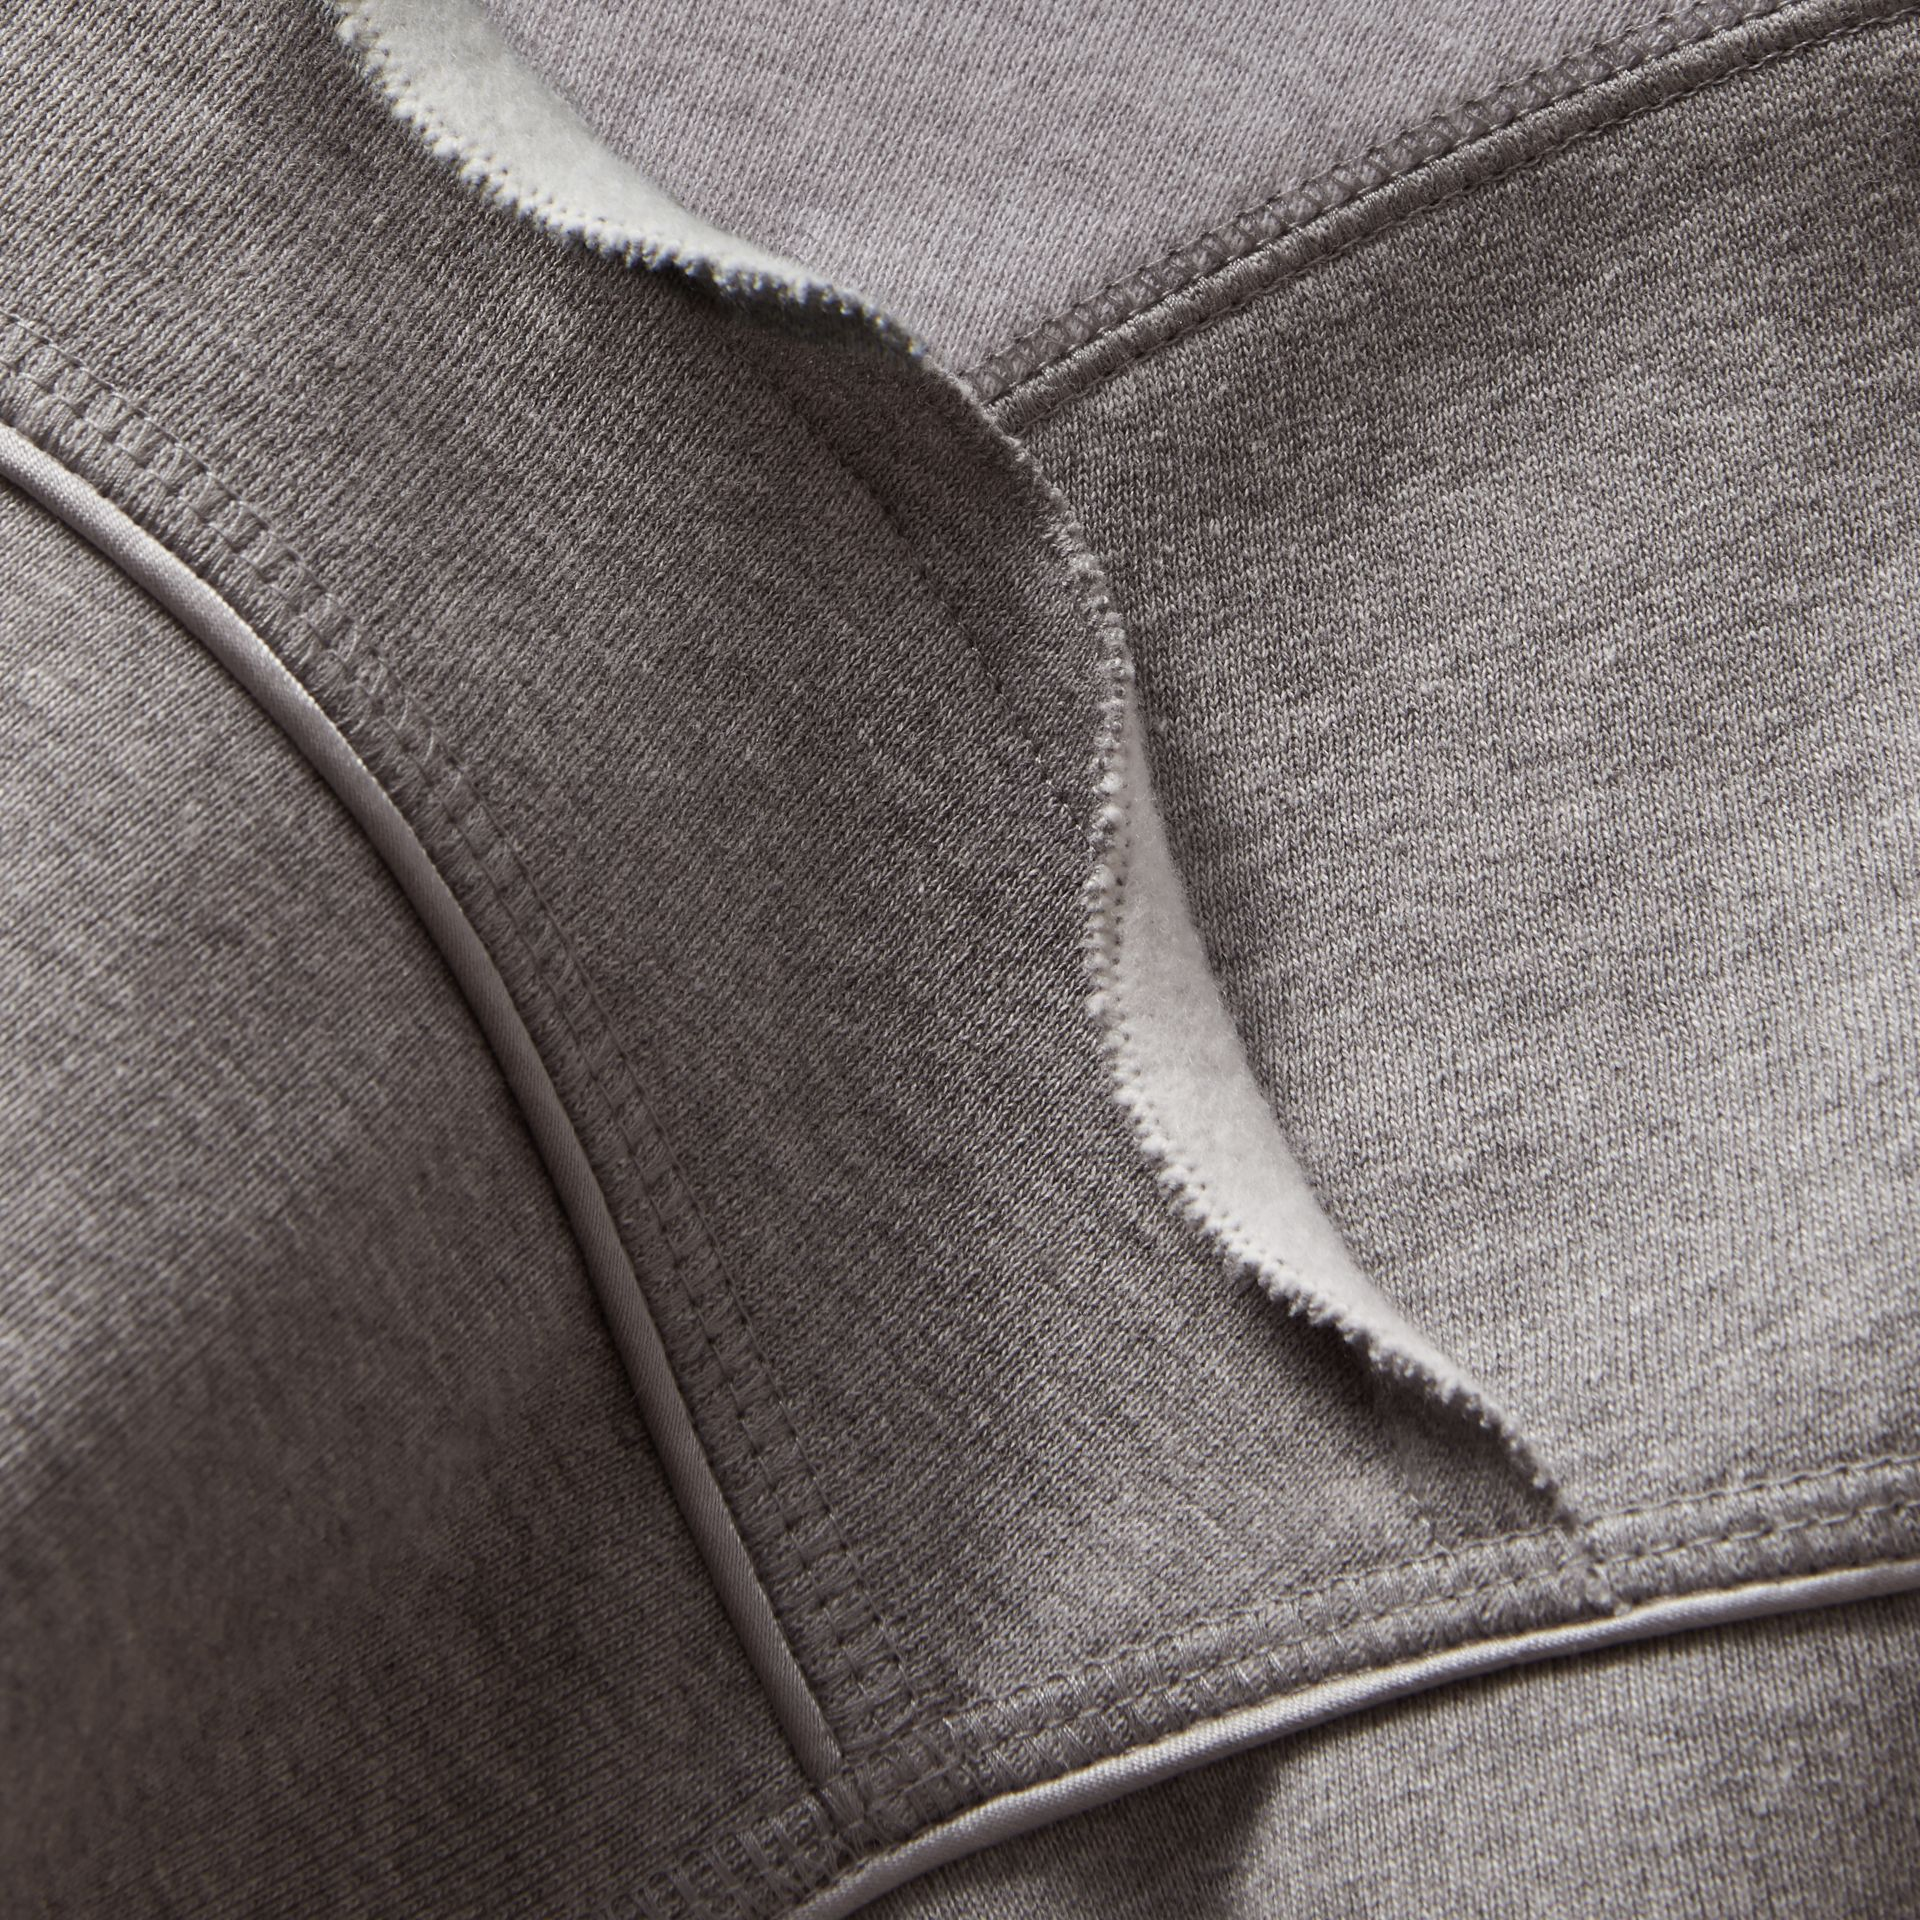 Sculptured-sleeve Seam Detail Sweatshirt in Grey Melange - Women | Burberry - gallery image 2